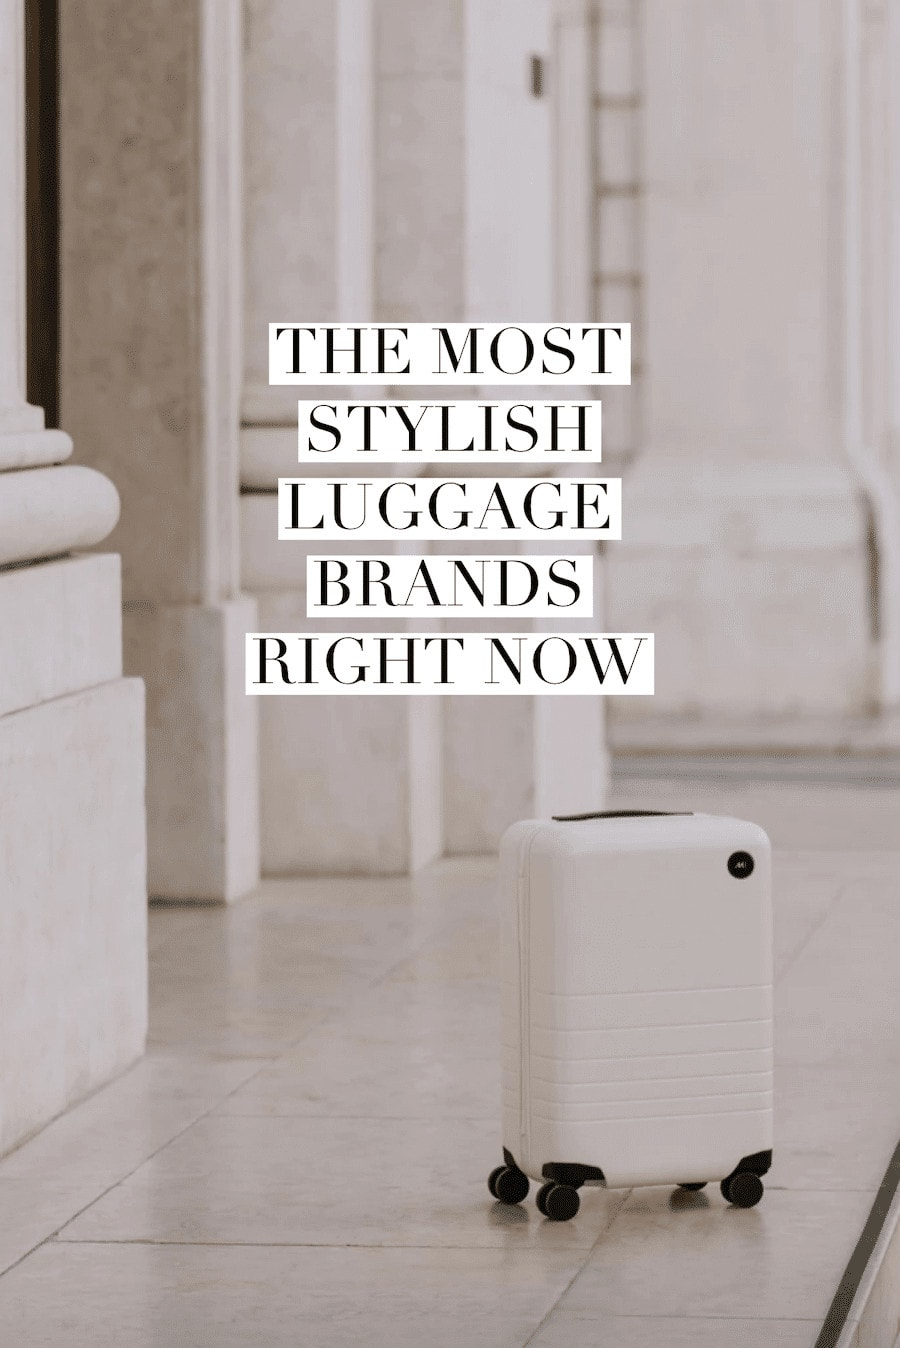 The Most Stylish Luggage Brands to Take on Your Next Trip